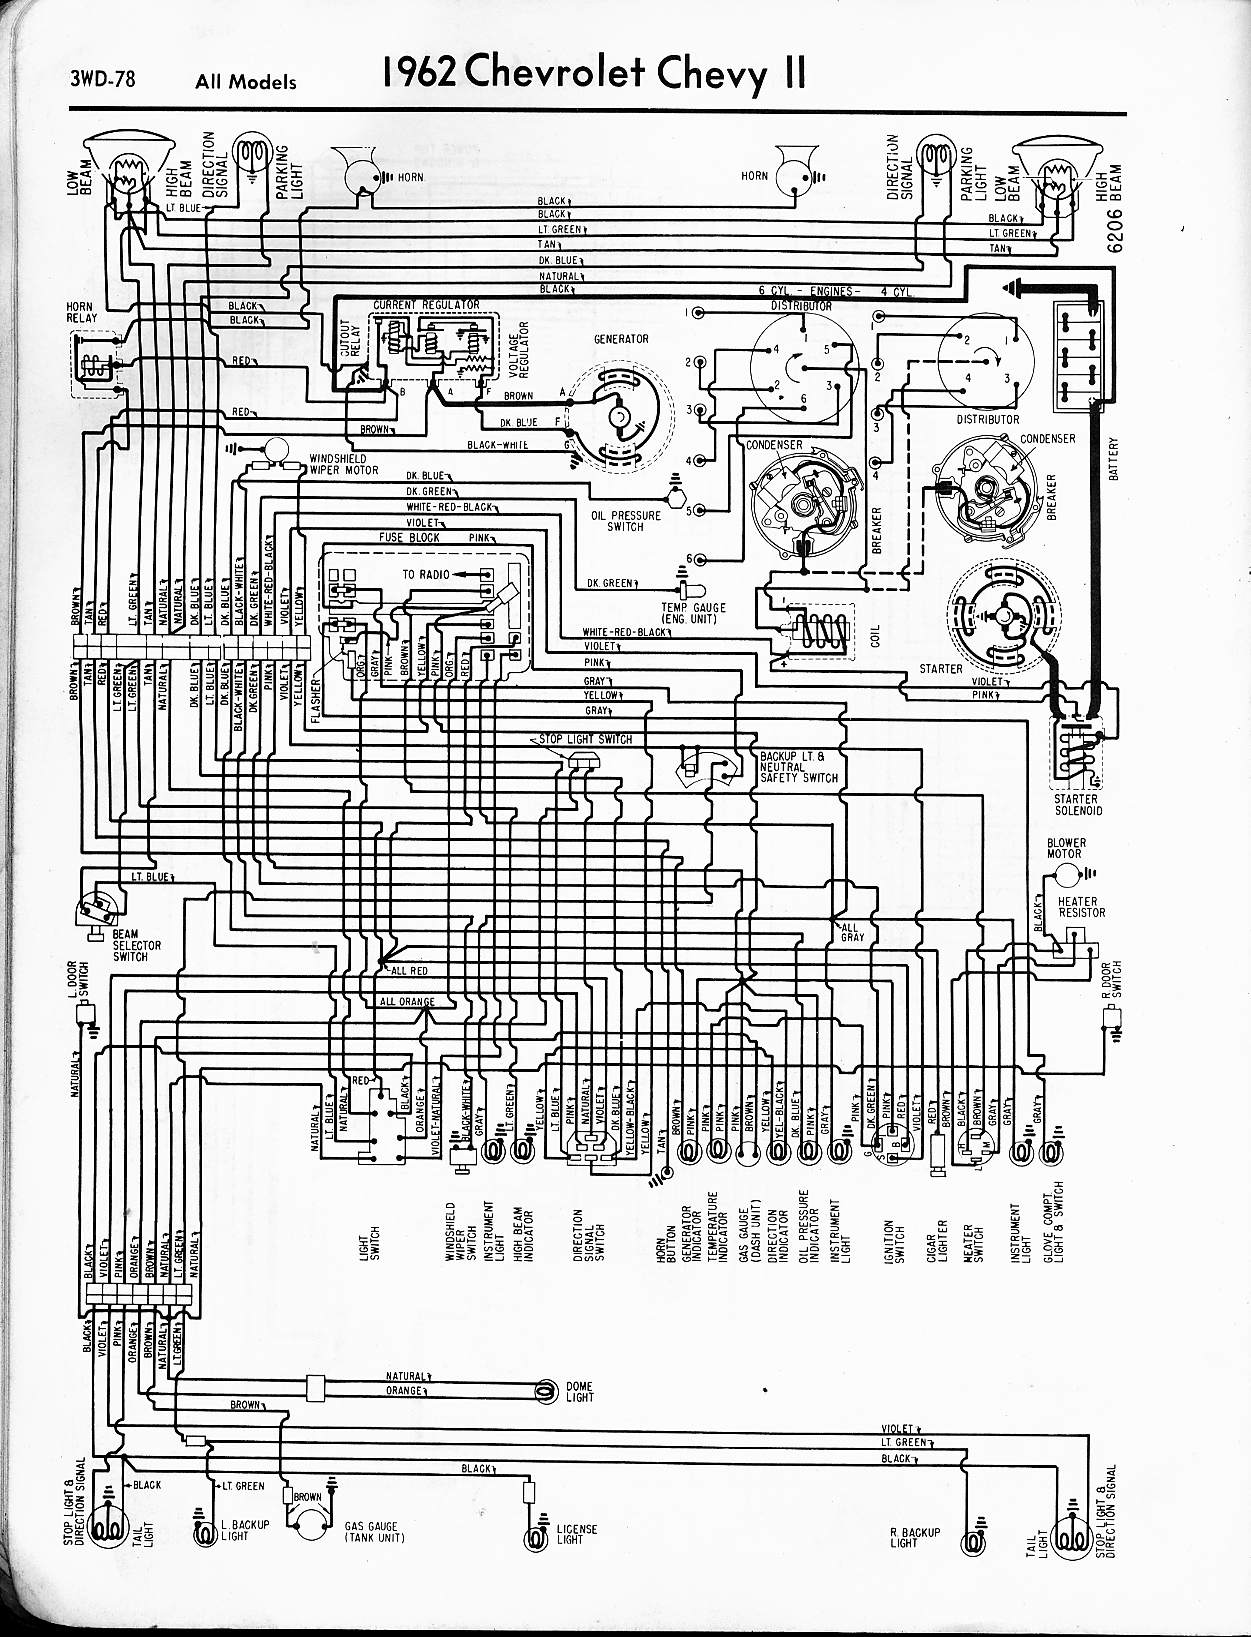 Marvelous 1976 Nova Wiring Diagram Wiring Diagram Tutorial Wiring Cloud Ymoonsalvmohammedshrineorg